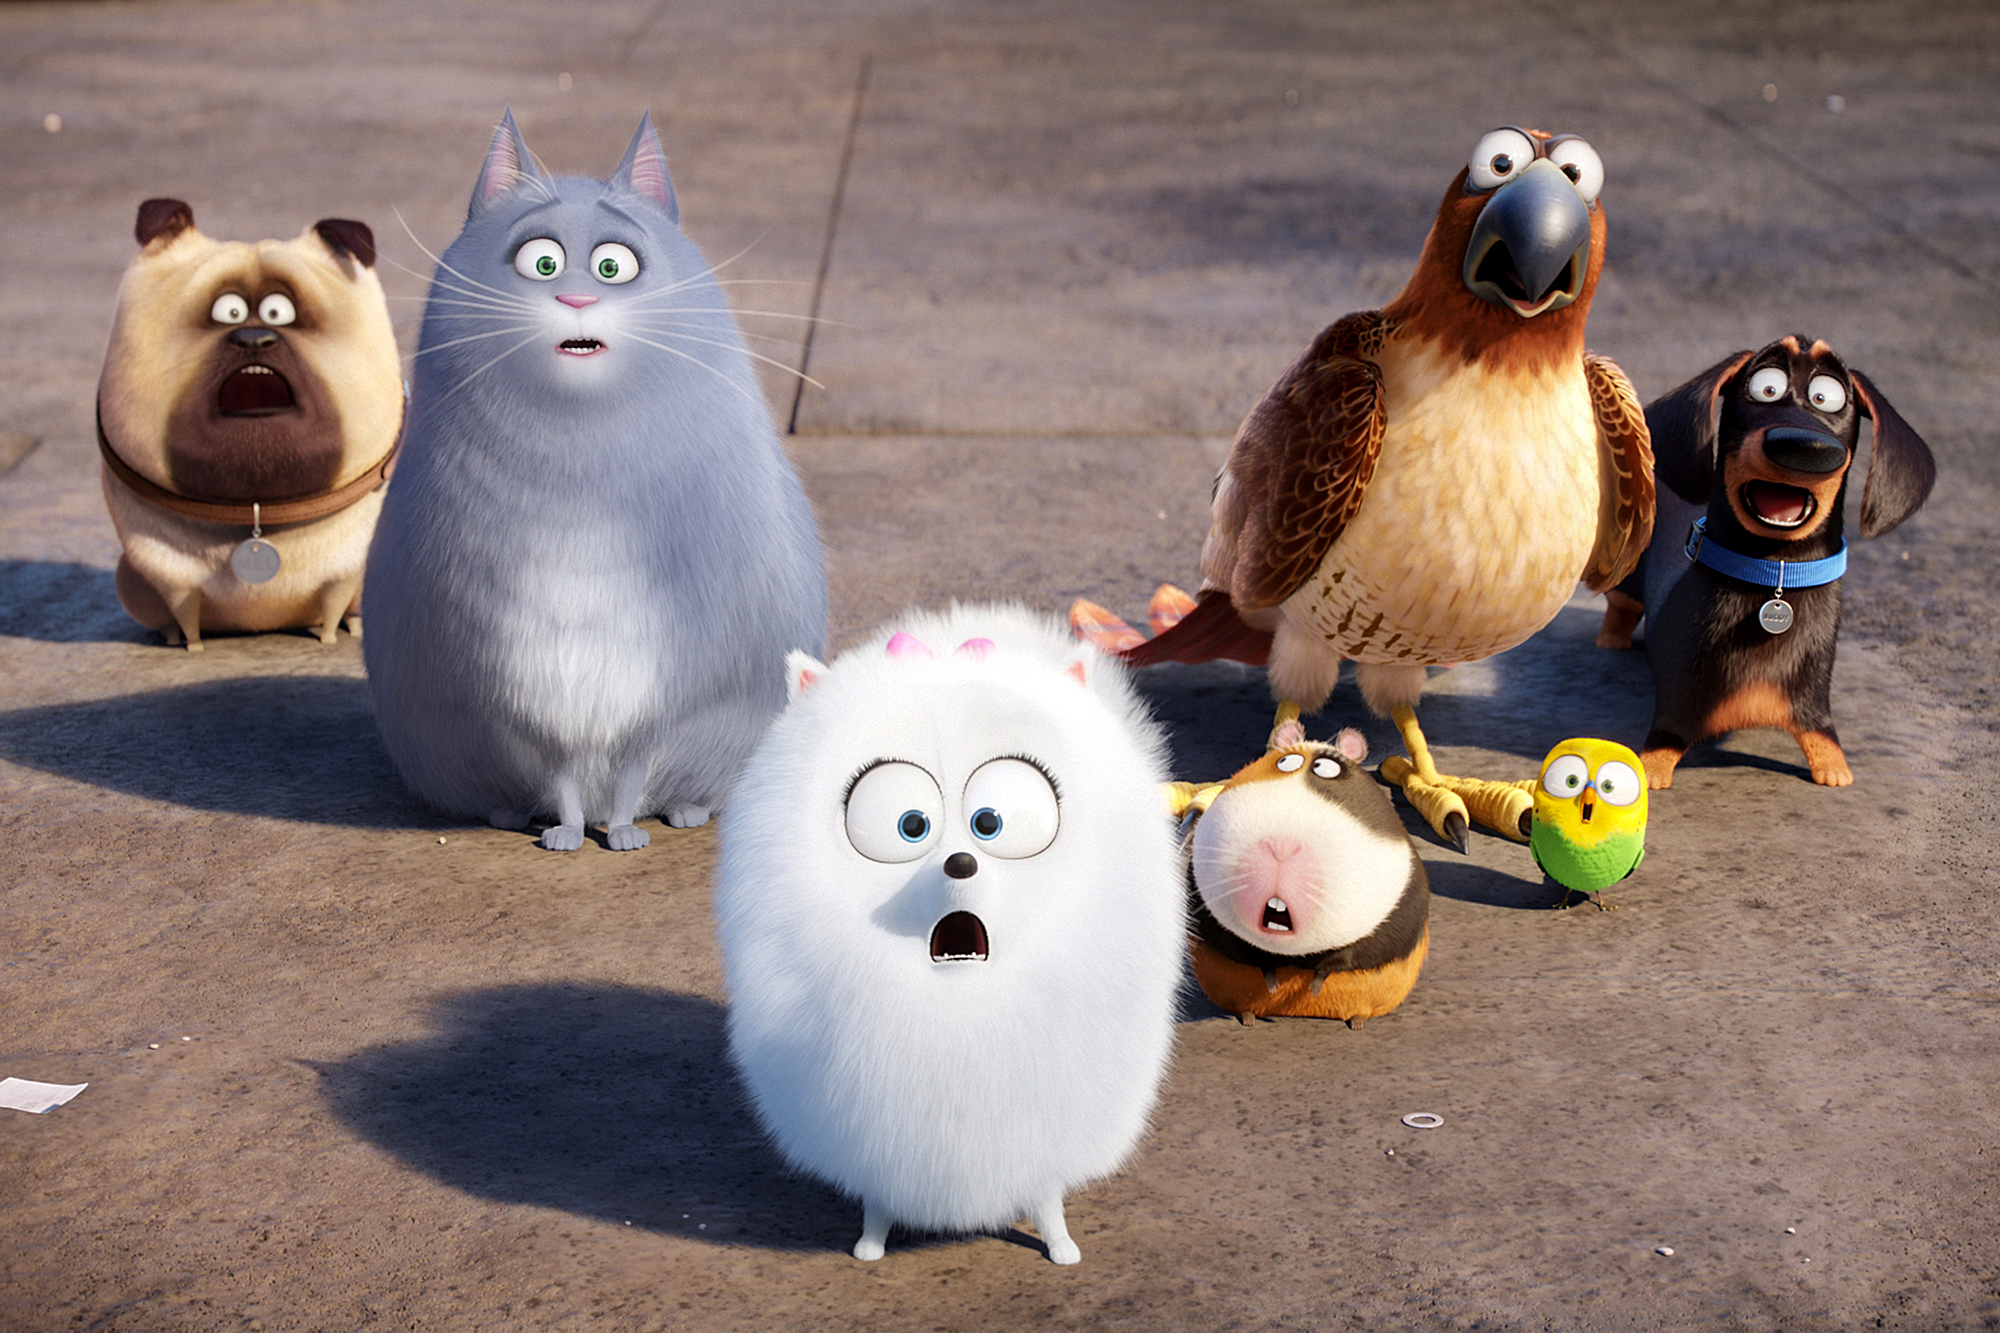 Film Title: The Secret Life of Pets